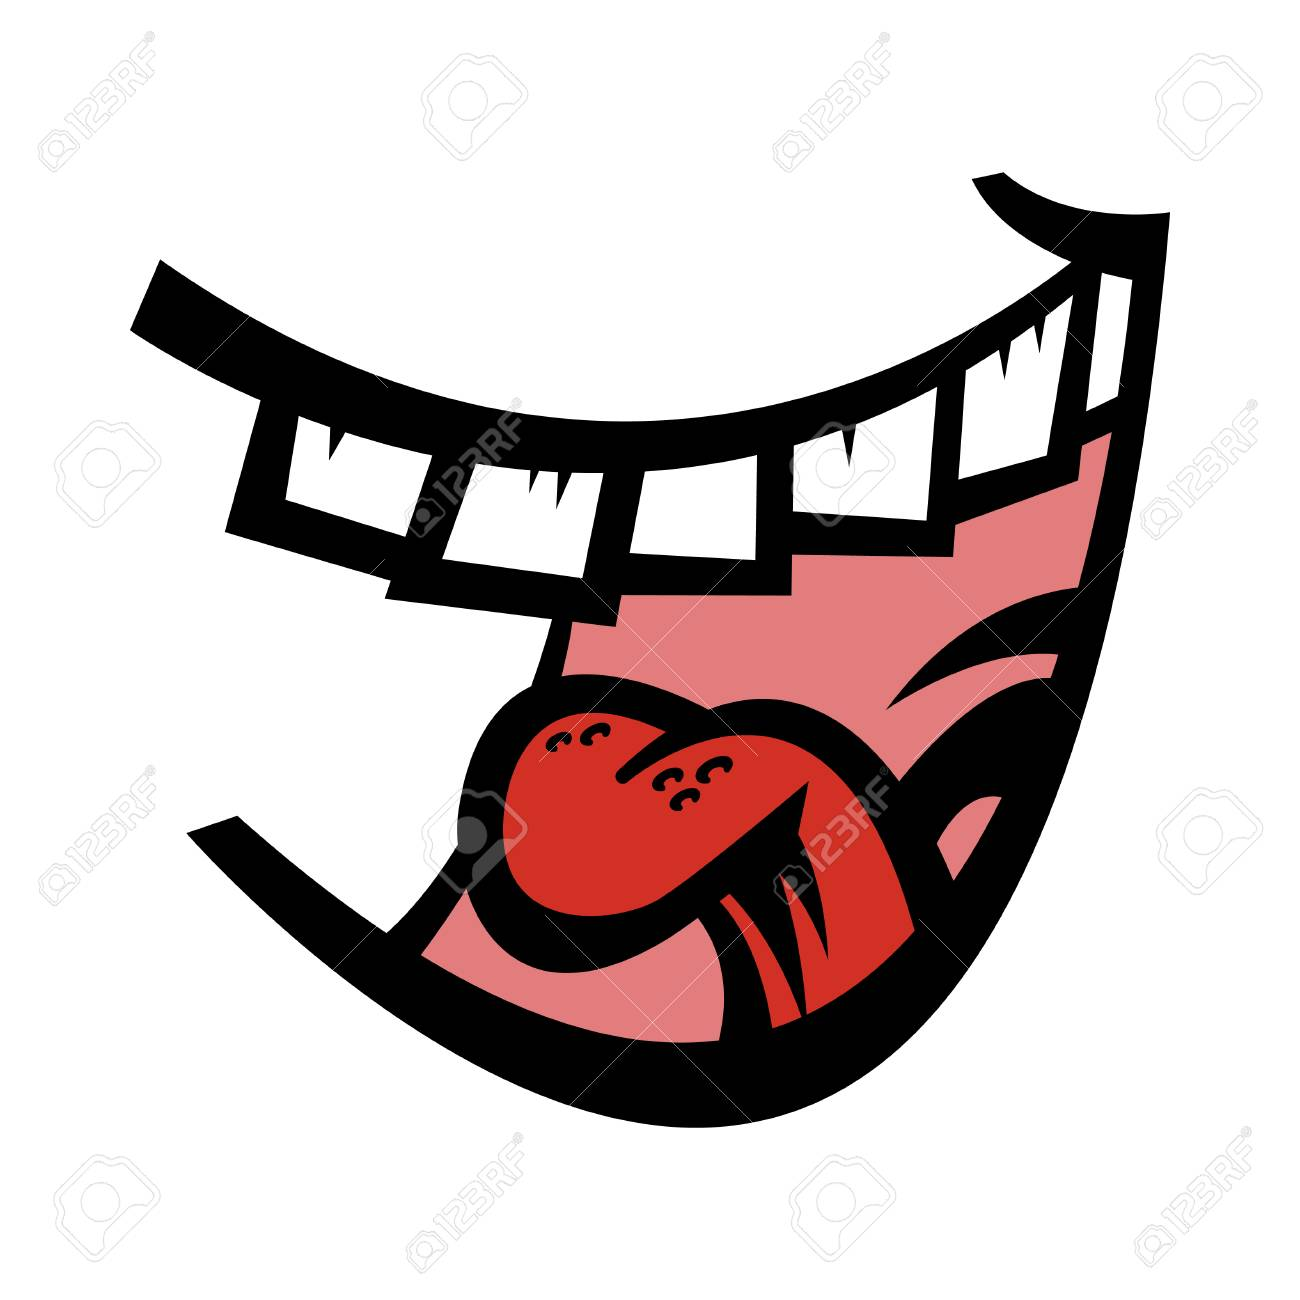 Mouth Laughing Clipart.